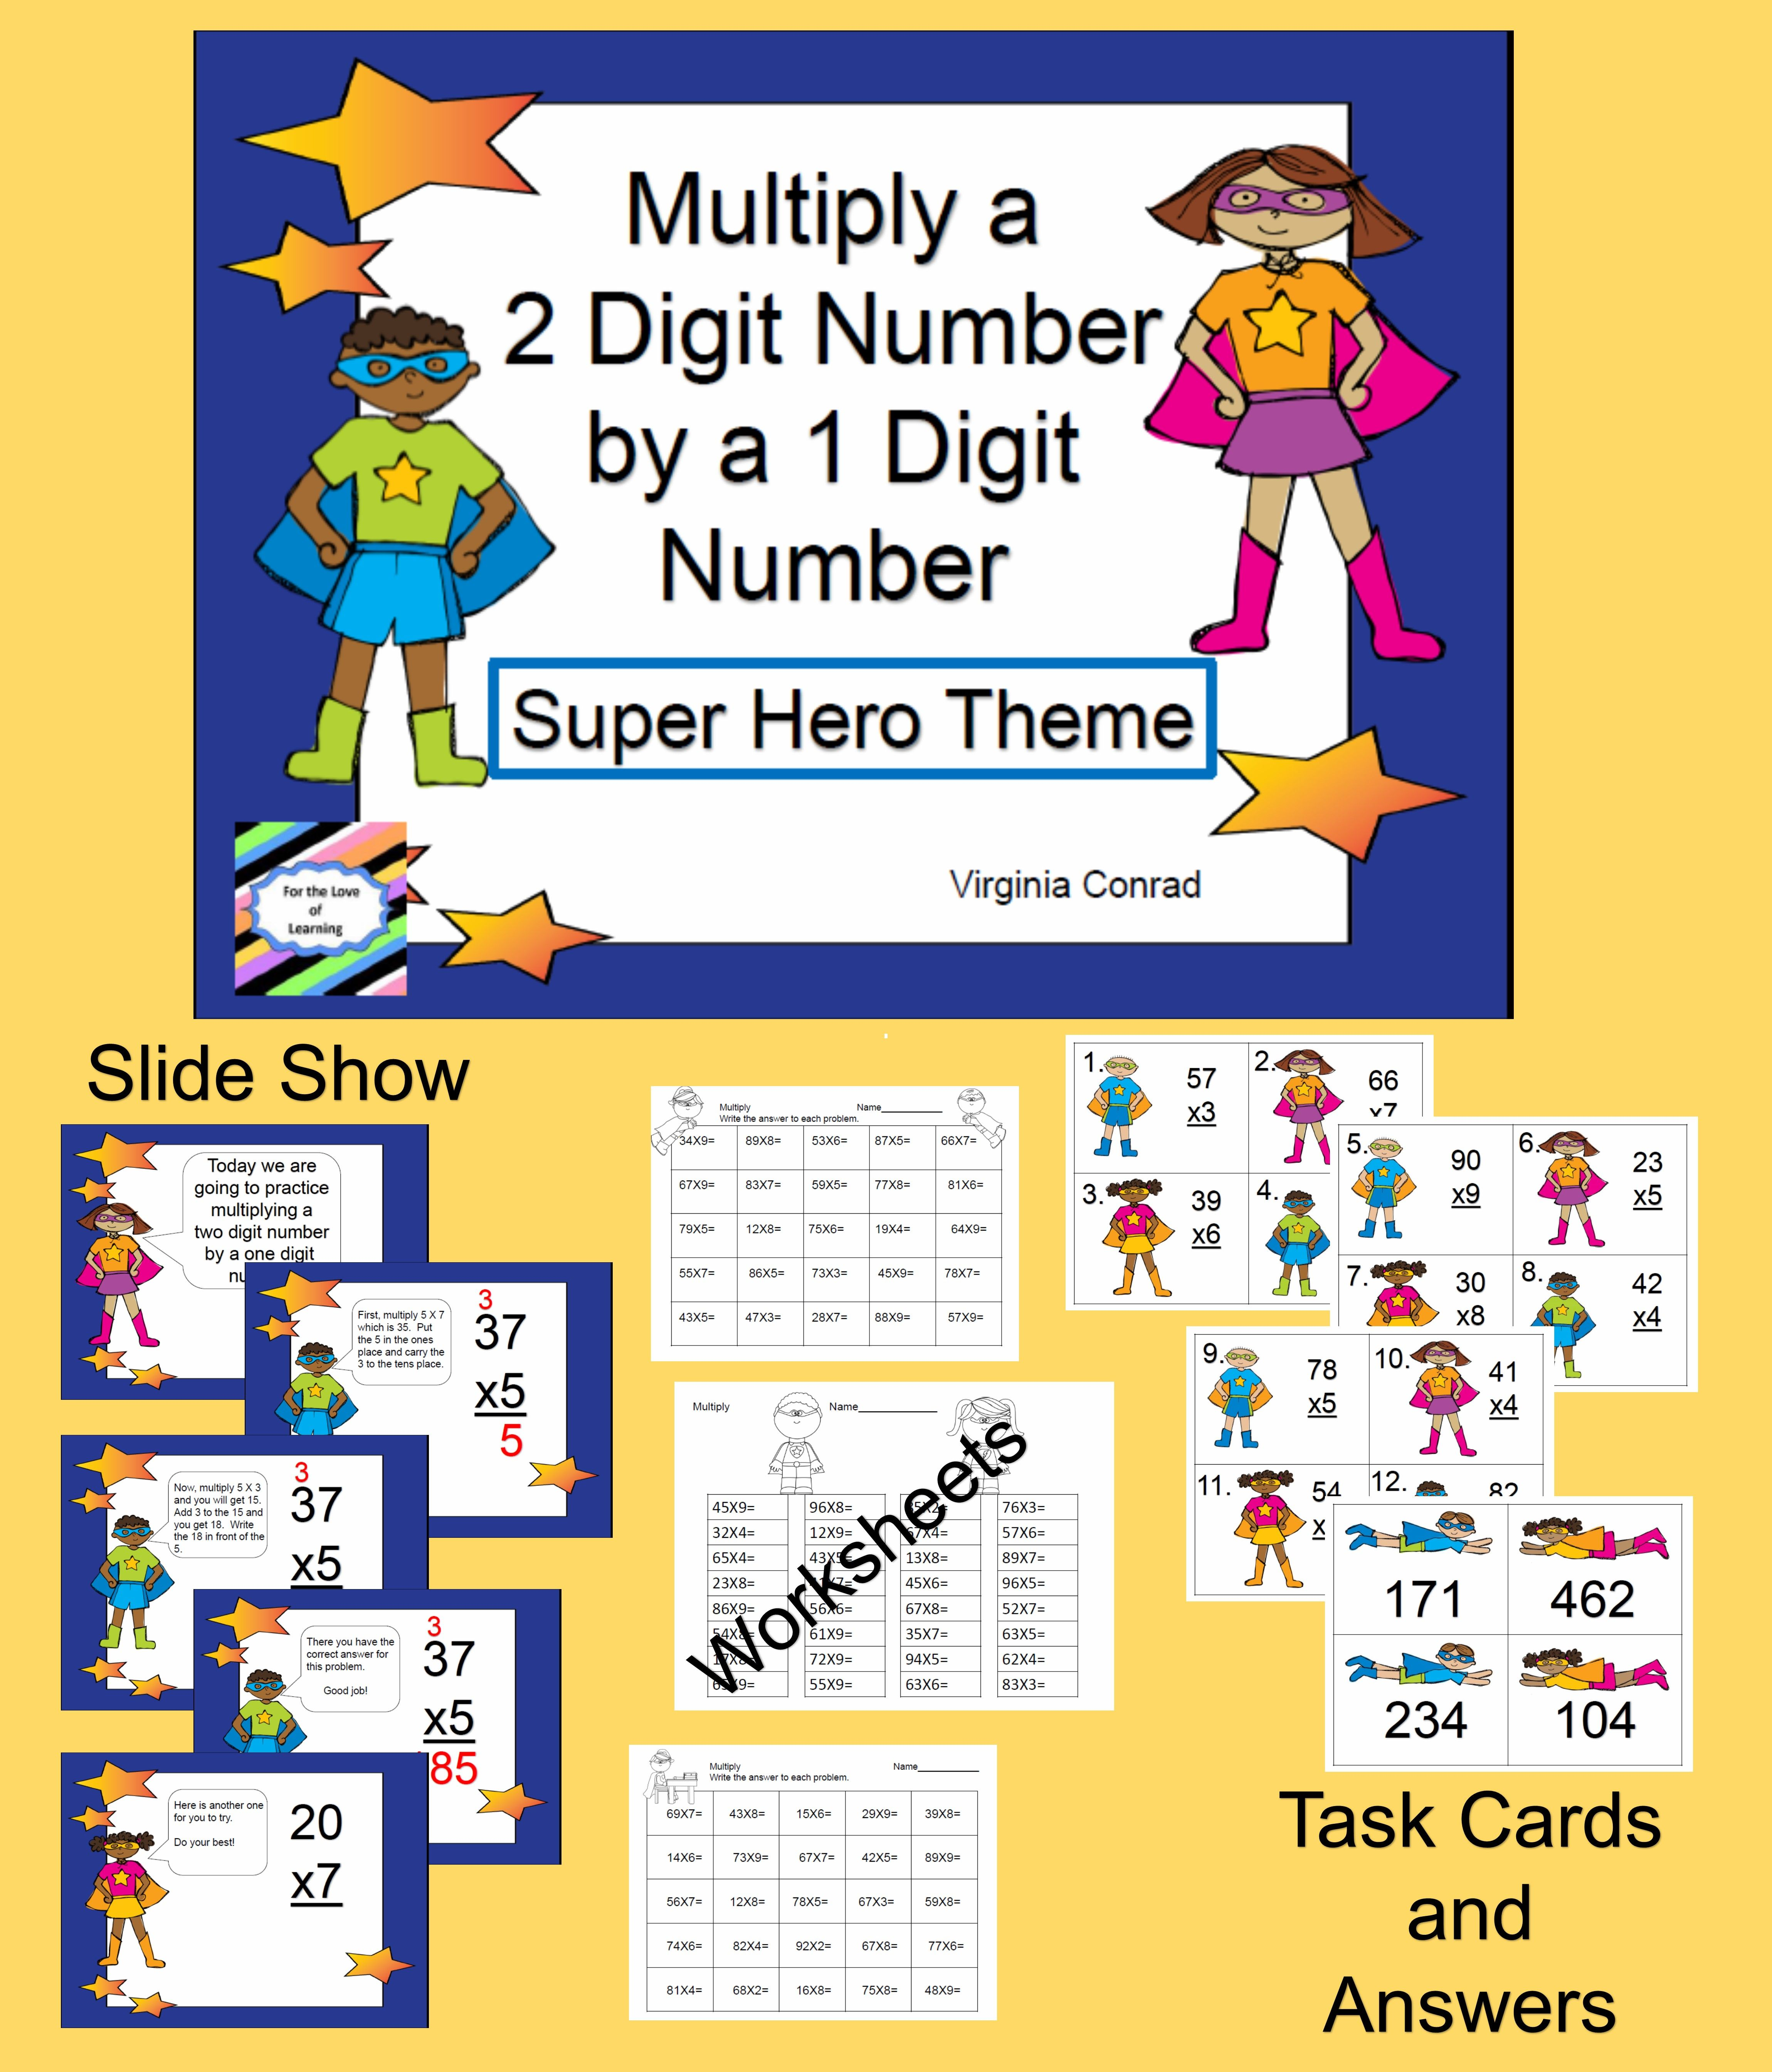 Multiply 2 Digit Number By 1 Digit Number Super Hero